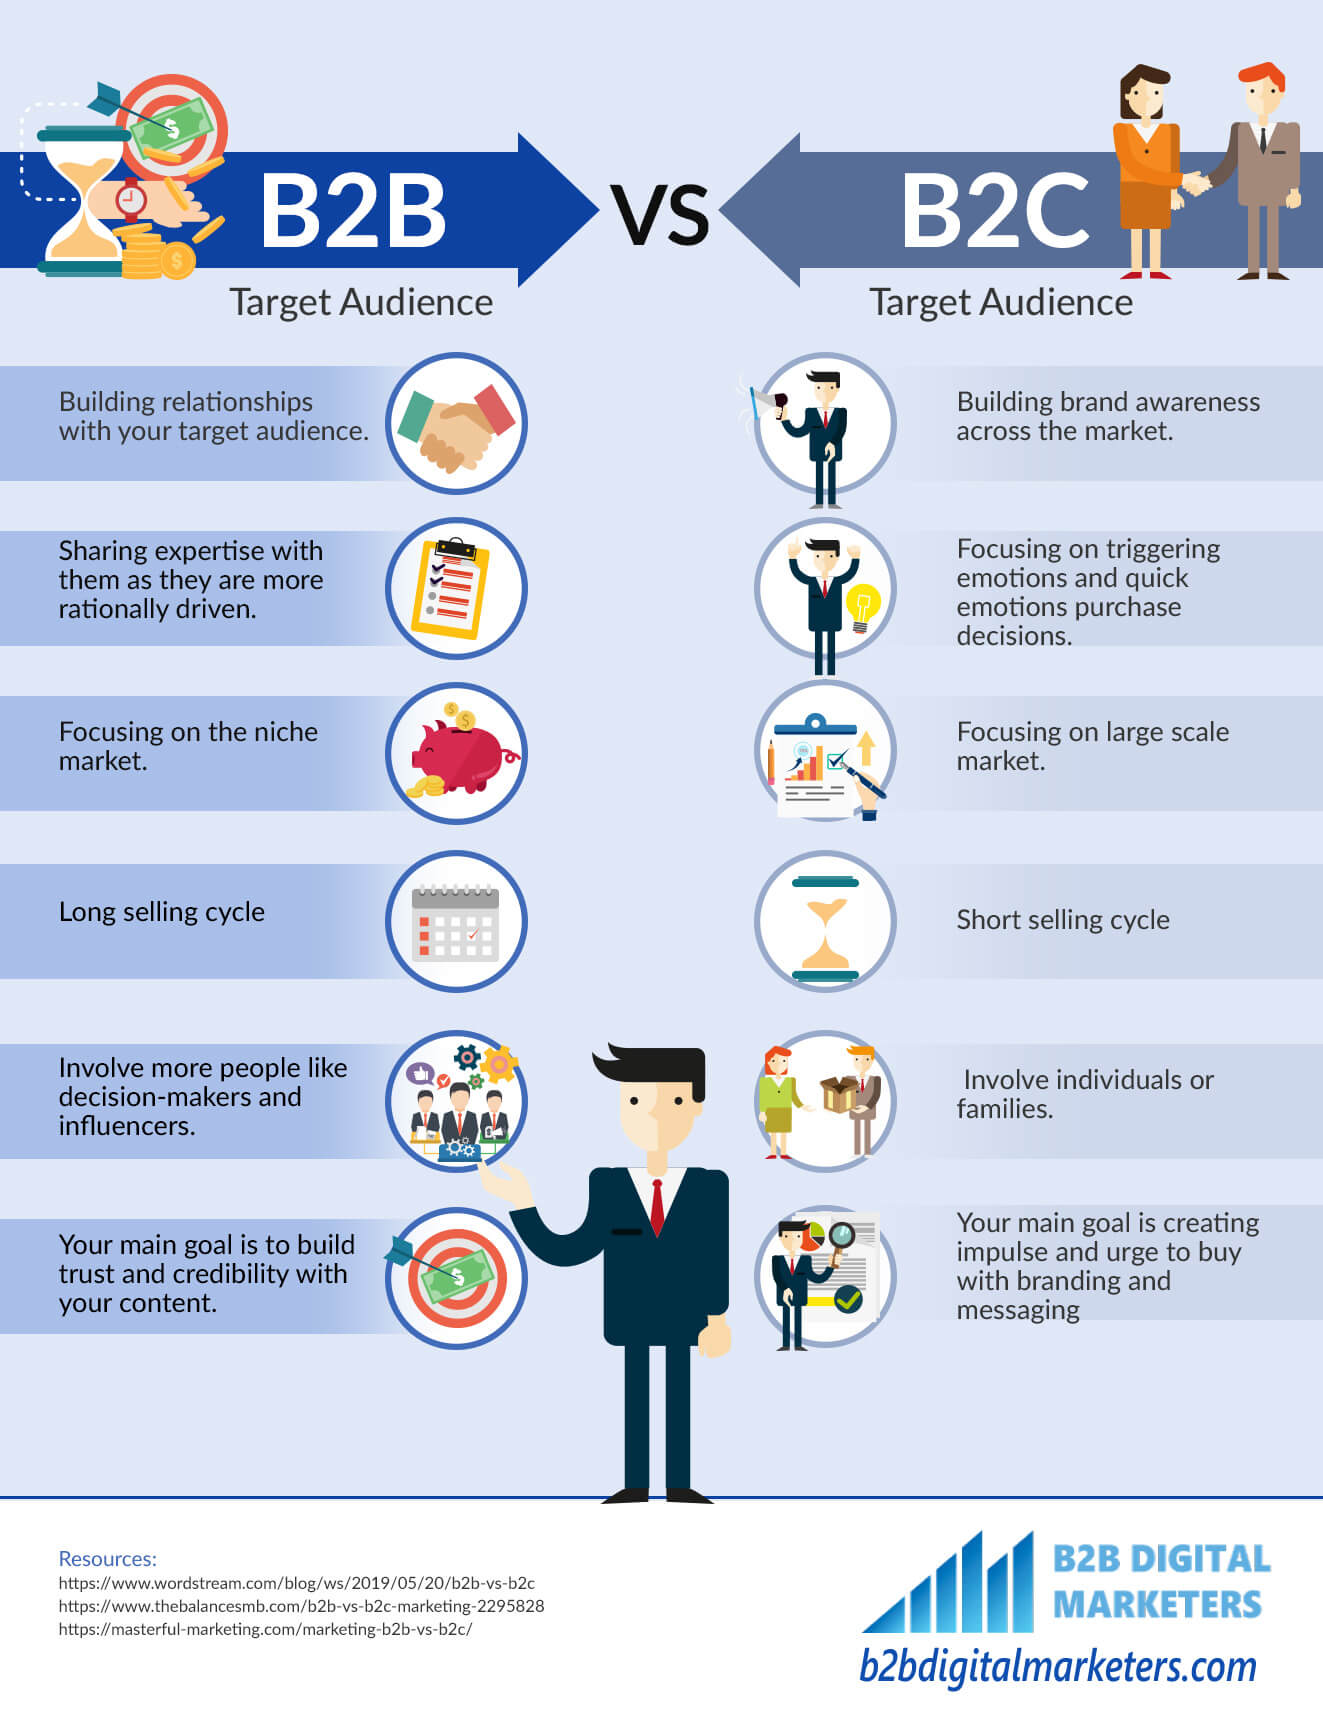 Infographic of B2B Target Audience vs B2C target audience. Differences between target audiences in B2B vs B2C Marketing. Building relationships with a target audience, sharing expertise with your target audience, more rational b2b buyers, long selling cycle, involve more people like decision-makers and influencers, the main goal is to build trust and credibility with your content in b2b marketing. In B2C marketing, build awareness across the market, focusing on triggering emotions and quick emotions purchase decisions, Focusing on a large scale market, short selling cycle, involve individuals and families and the main goal is creating impulse and urge to buy with branding and messaging.